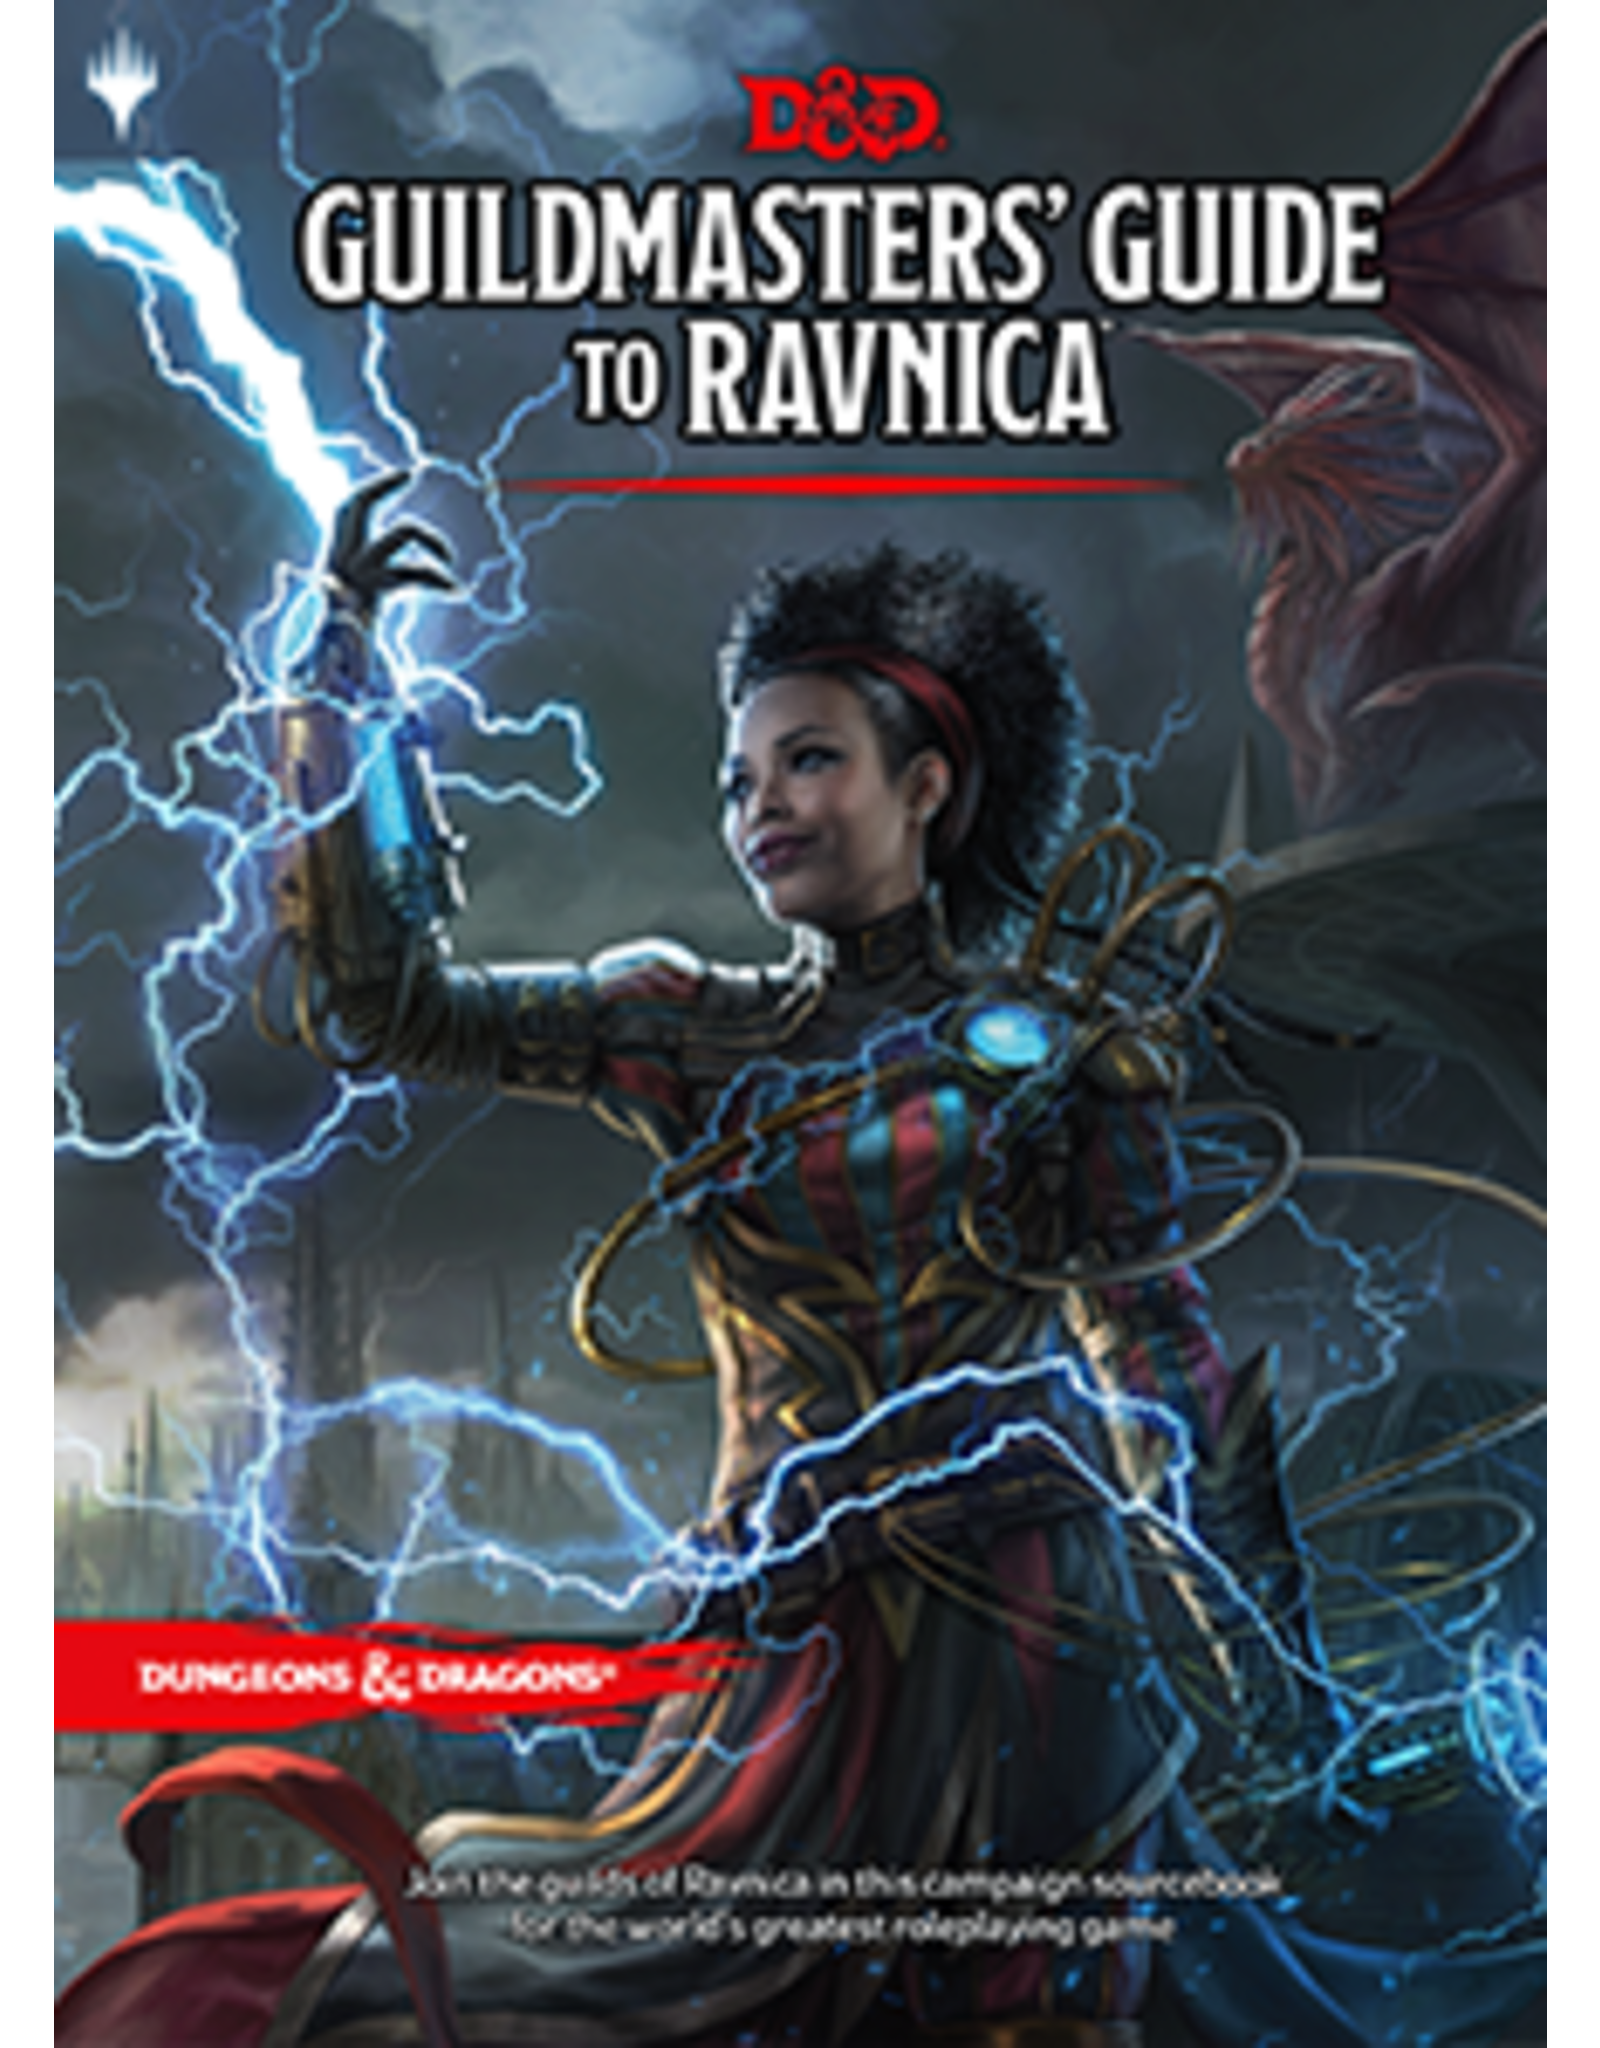 Wizards of the Coast D&D 5th Edition: Guildmasters' Guide to Ravnica